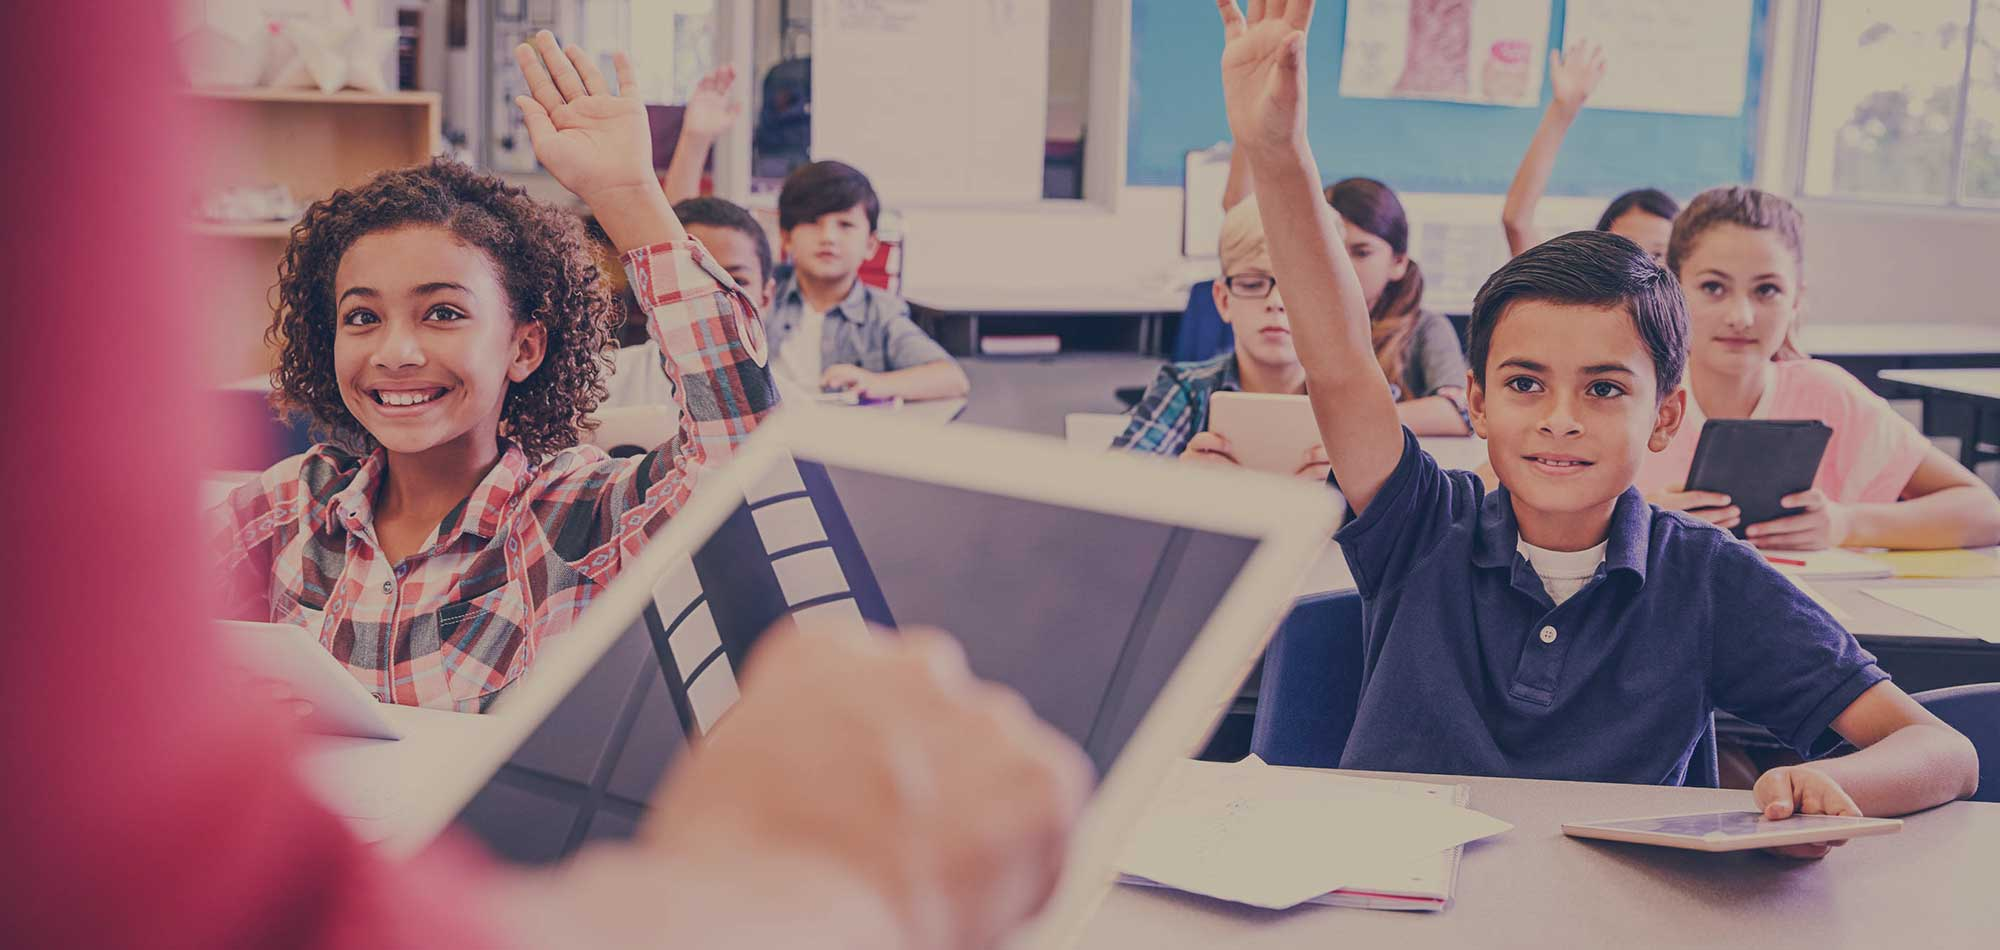 12-things-to-remember-when-preparing-for-ipads-in-the-classroom-k12-wlan-design-tips.jpg